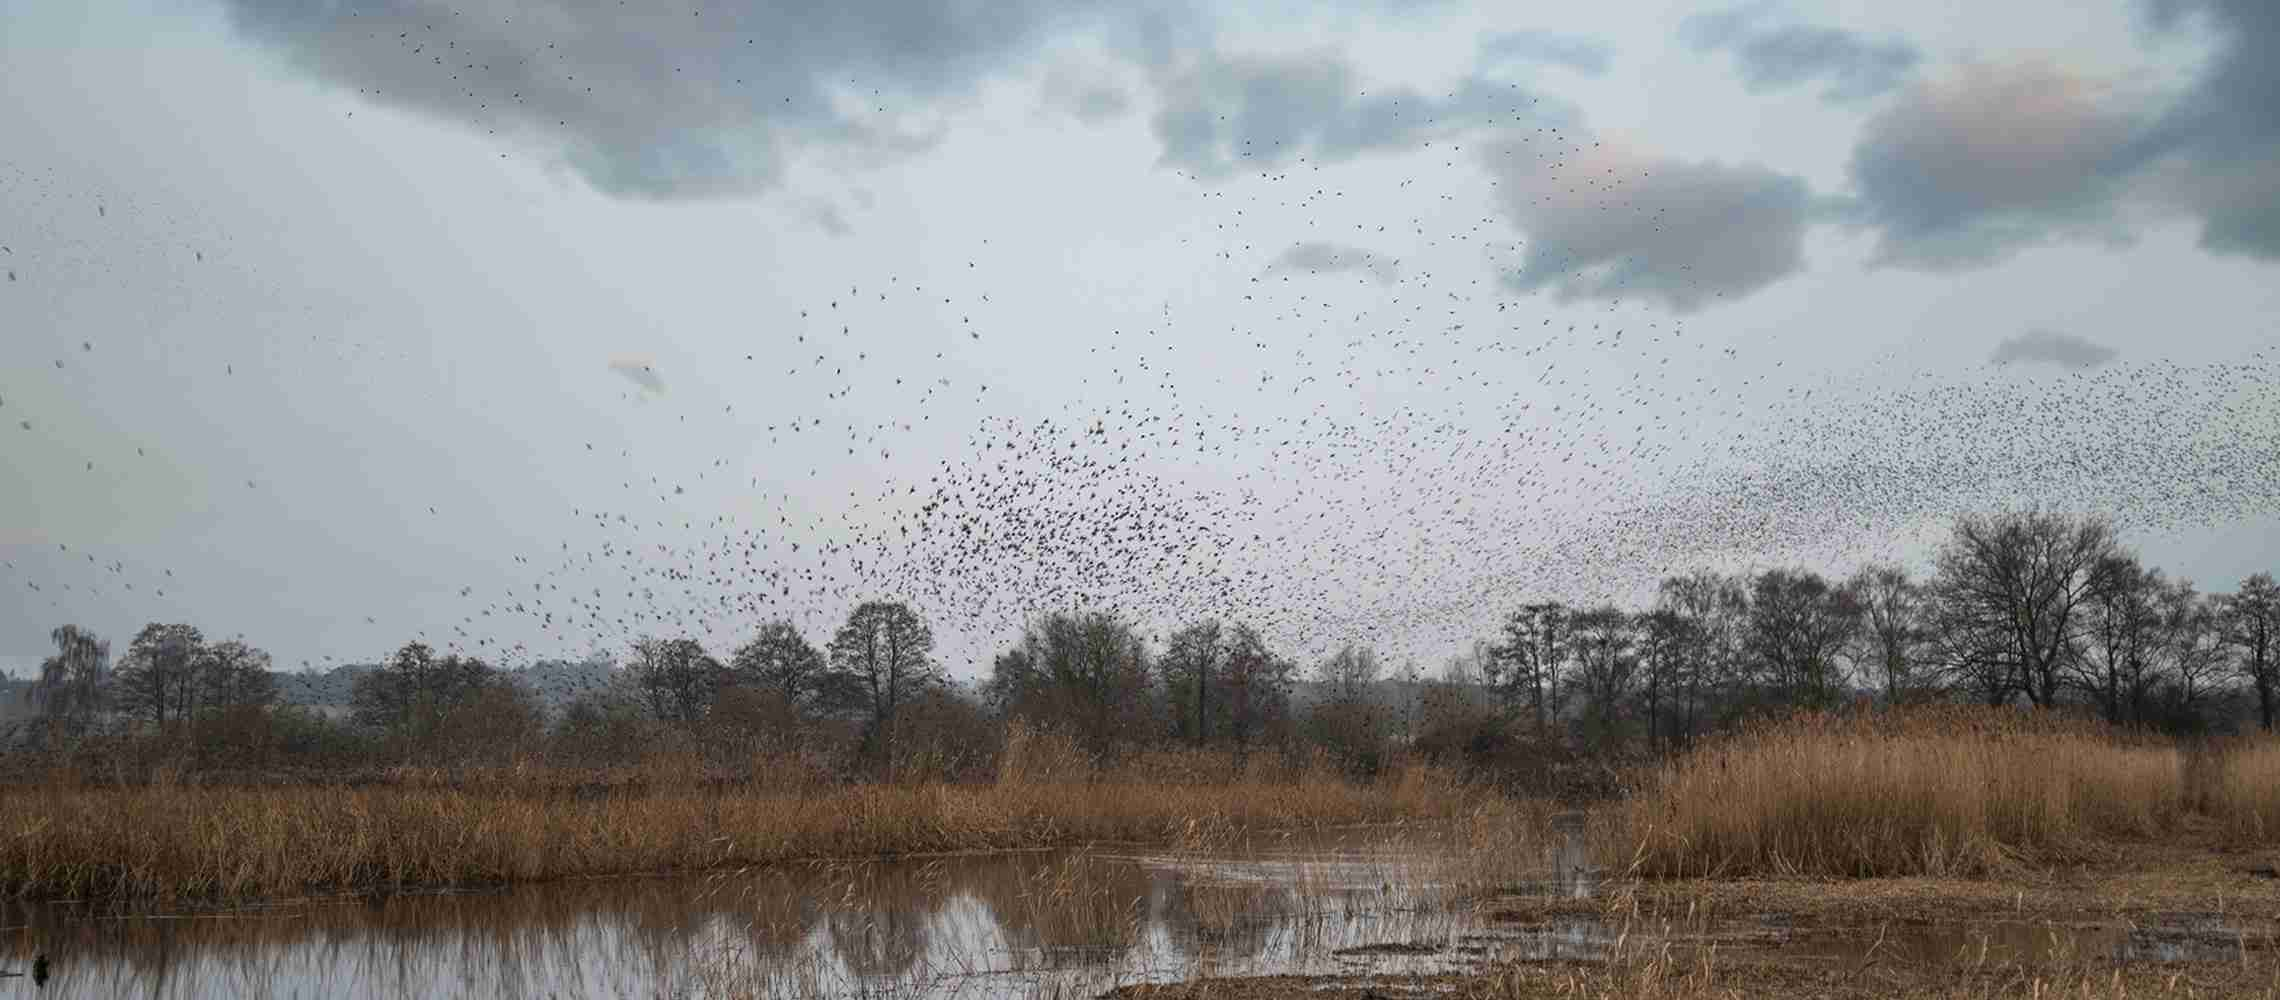 A murmuration of starlings on the somerset levels.